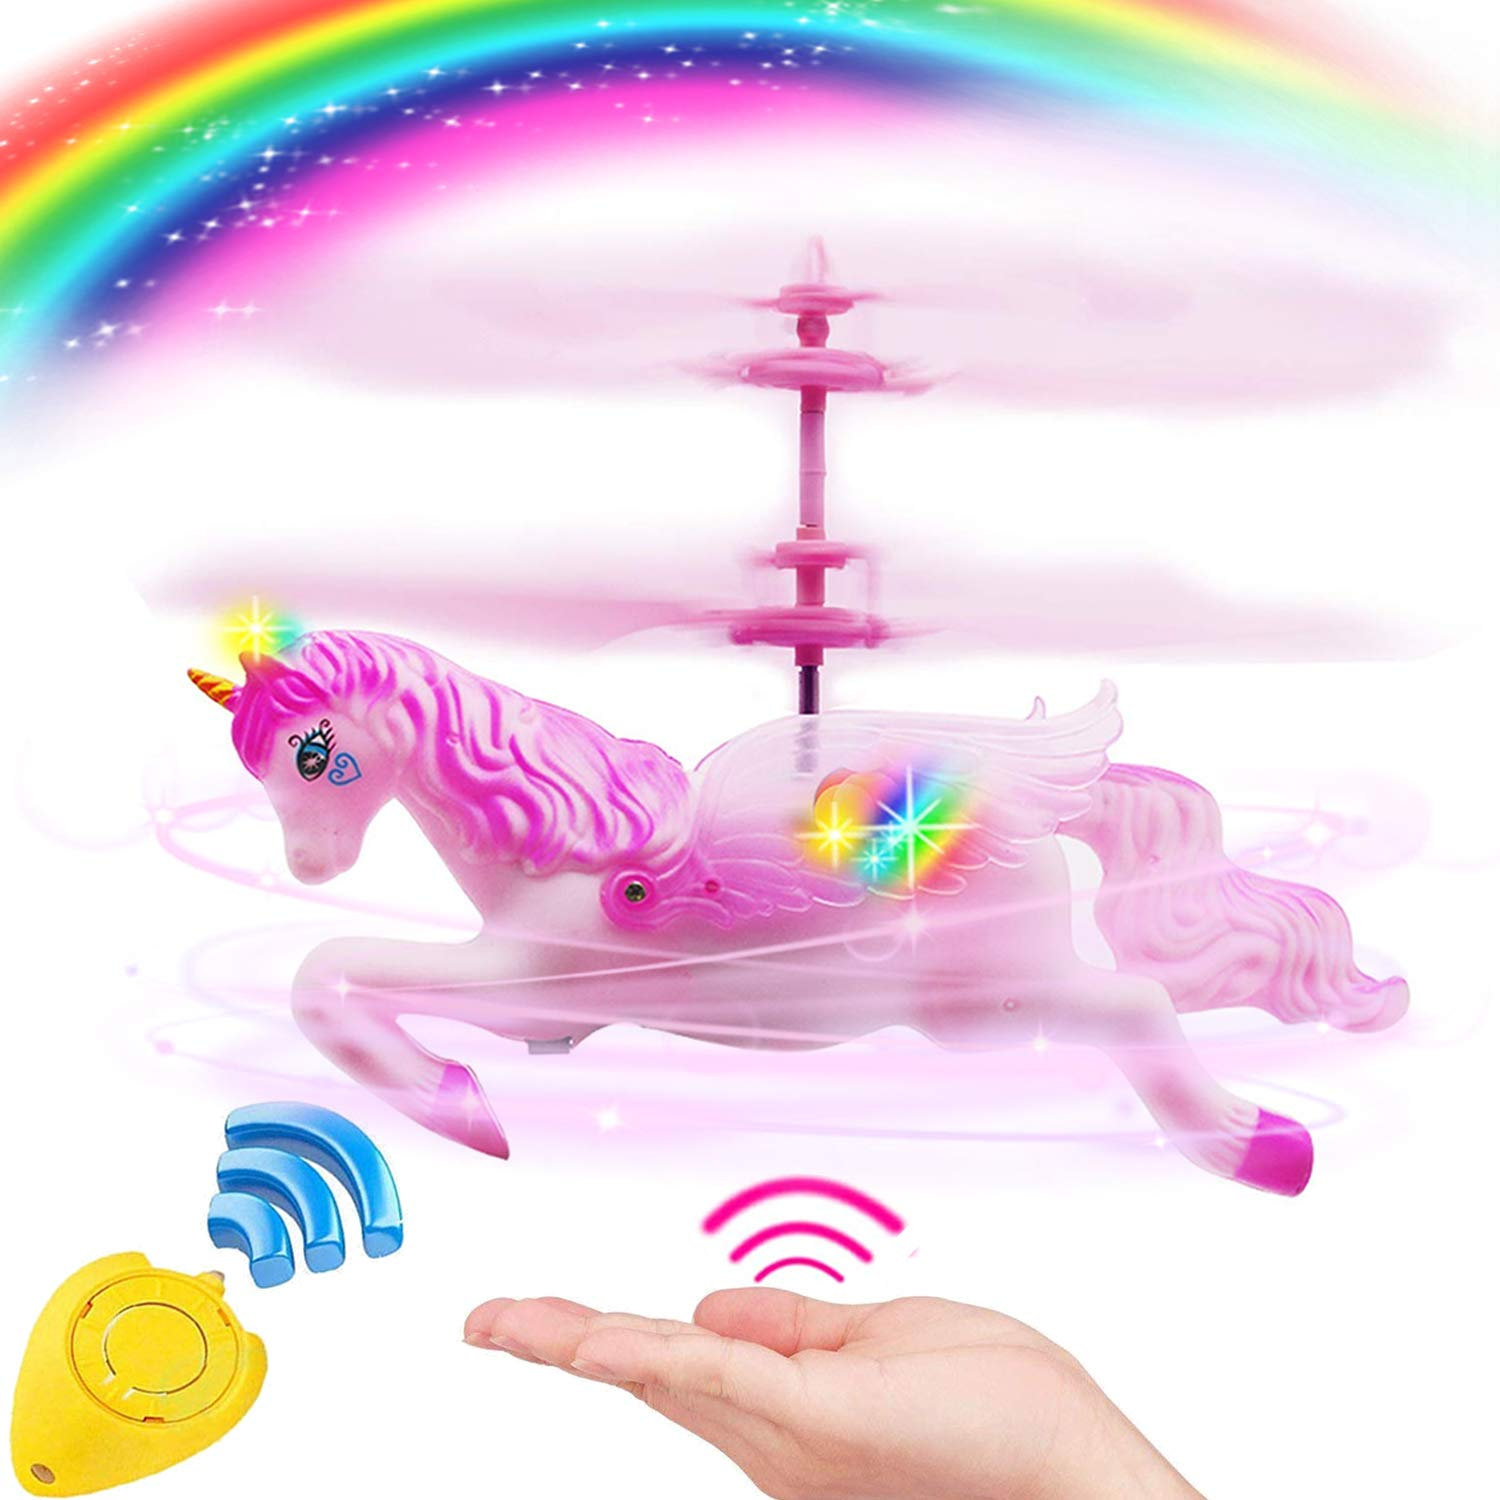 Flying Ball RC Unicorn Toys, Mini RC Flying Helicopter Unicorn Toy Gifts Hand Control Drones for Kids Boys Girls Flying Fairy Unicorn Doll Hovering Aircraft Outdoor Flying Toys Games Birthday Gift by Synmila (Image #1)